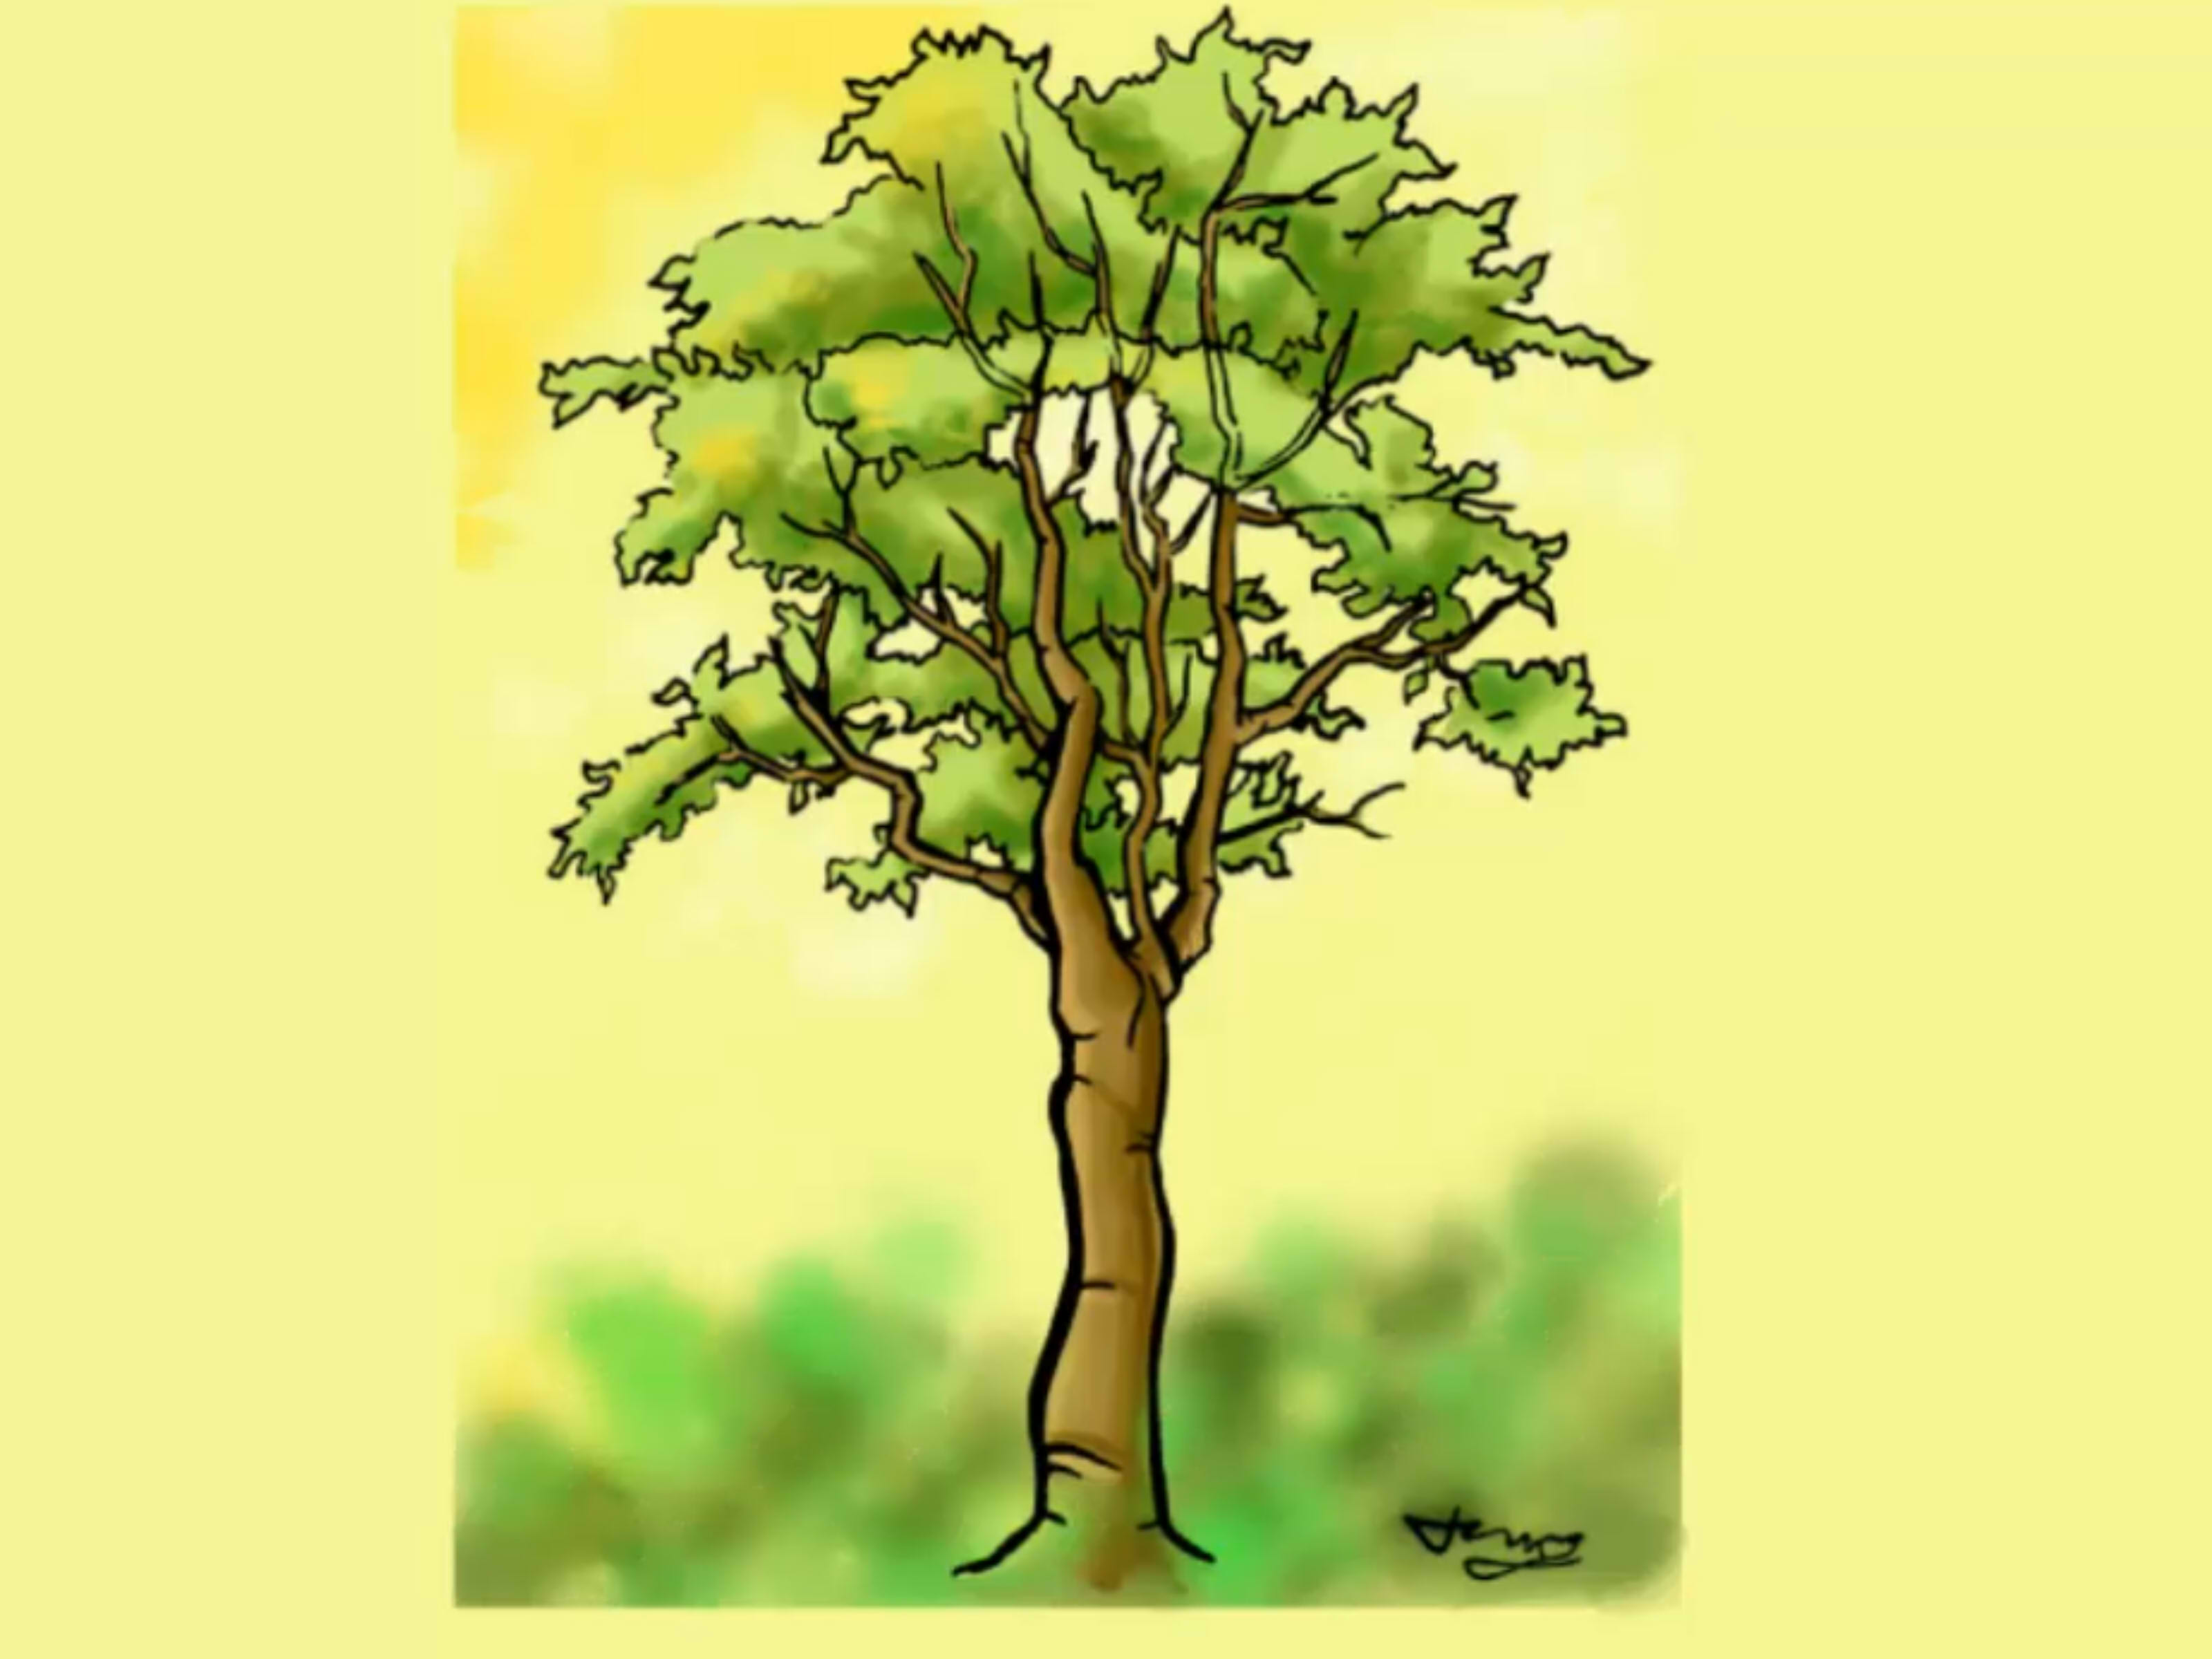 Jungle Tree Drawing at GetDrawings.com | Free for personal use ...